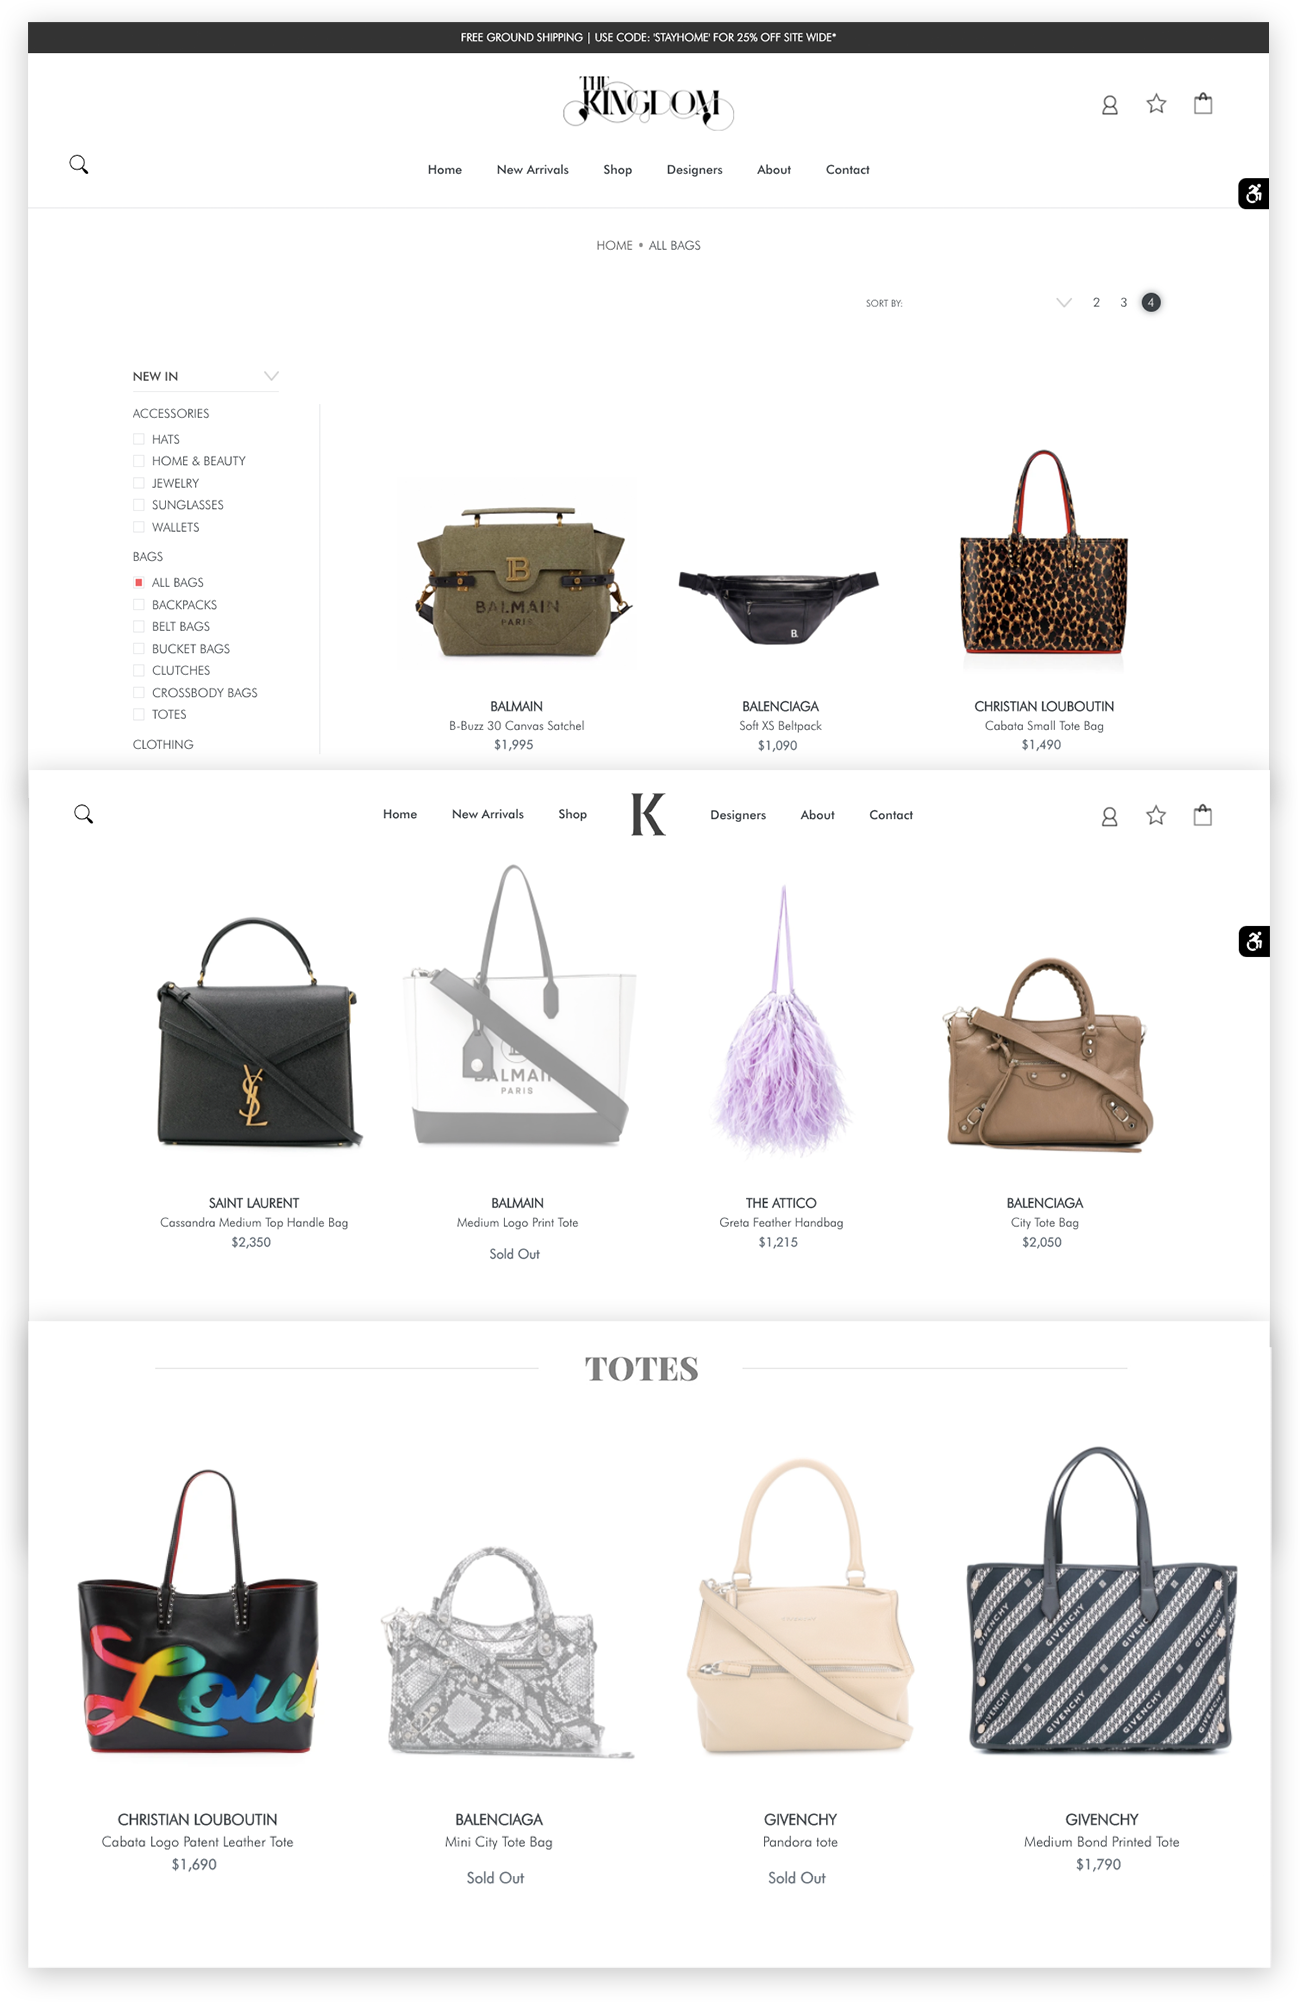 Example_3_The_Kingdom_-_Dynamic_Shop_Filter